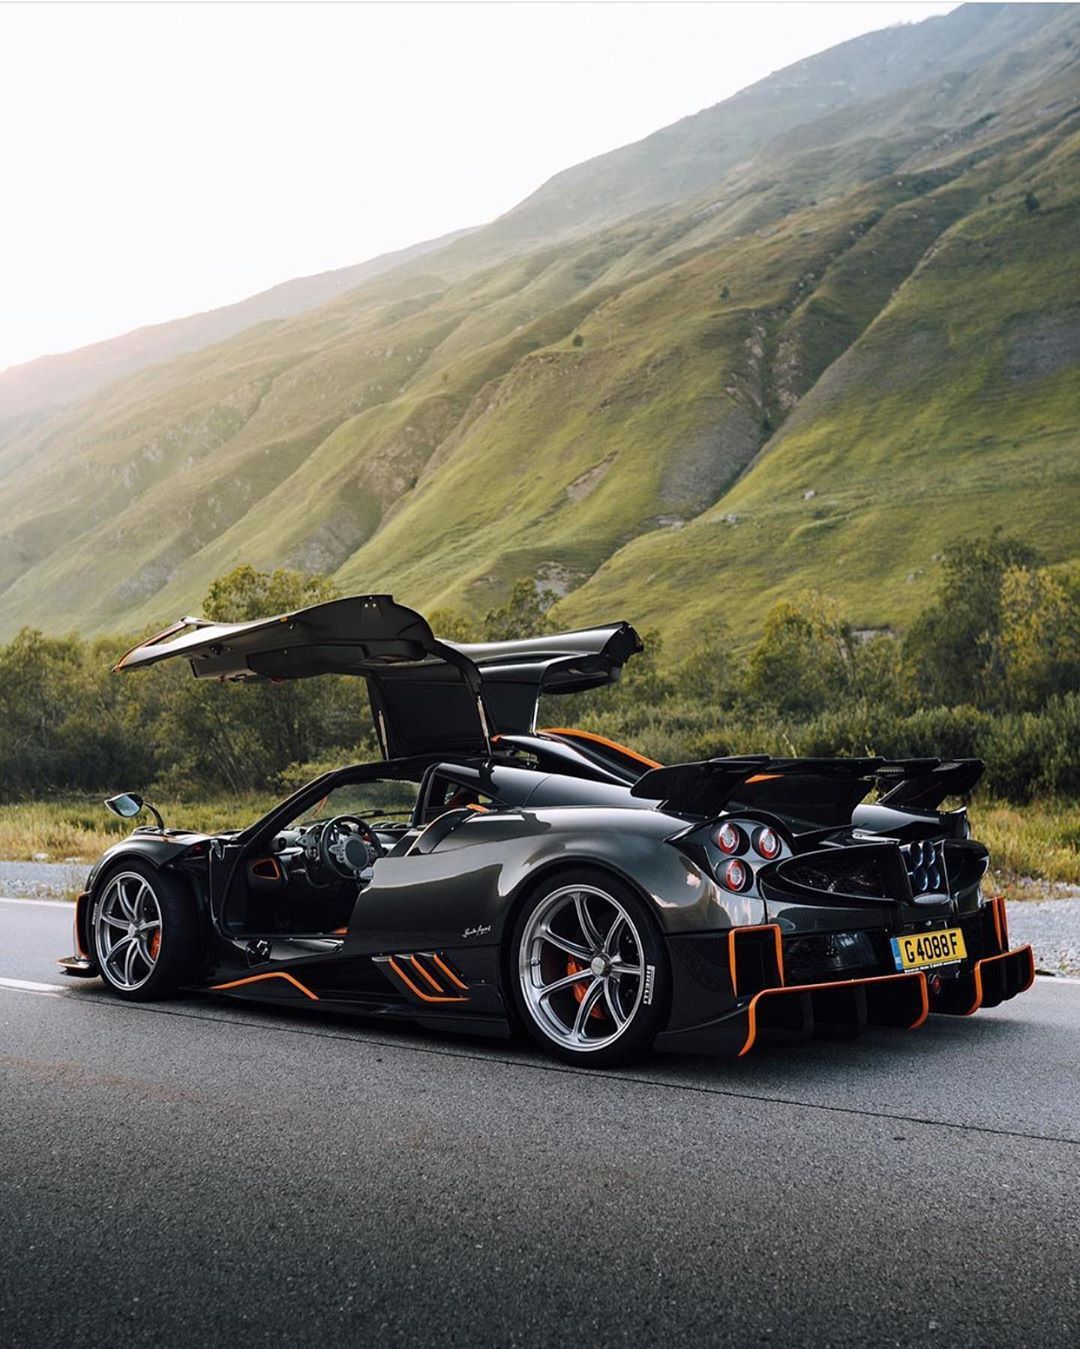 Sports Luxury And Supercars On Instagram This Is The New Pagani Huayra Imola The First Of 5 Cars In Total That Will Be Prod In 2020 Pagani Huayra Pagani Super Cars